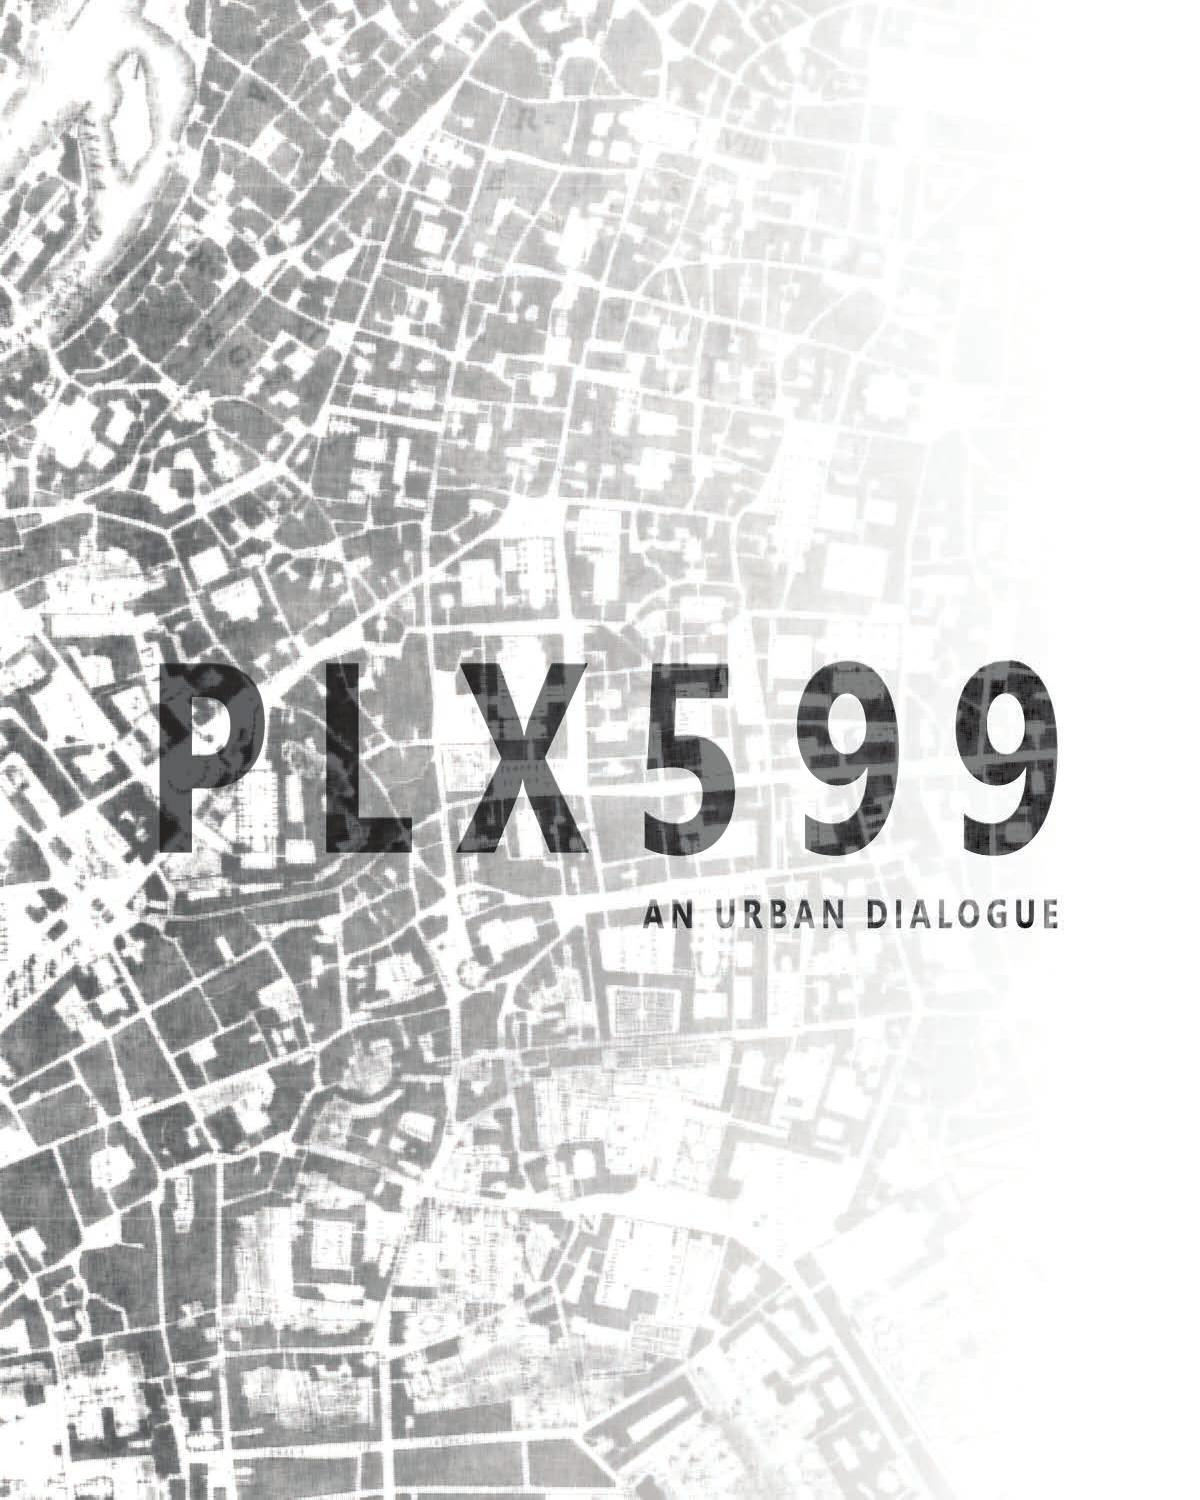 PLX599 An Urban Dialogue By Michael Hankus Issuu